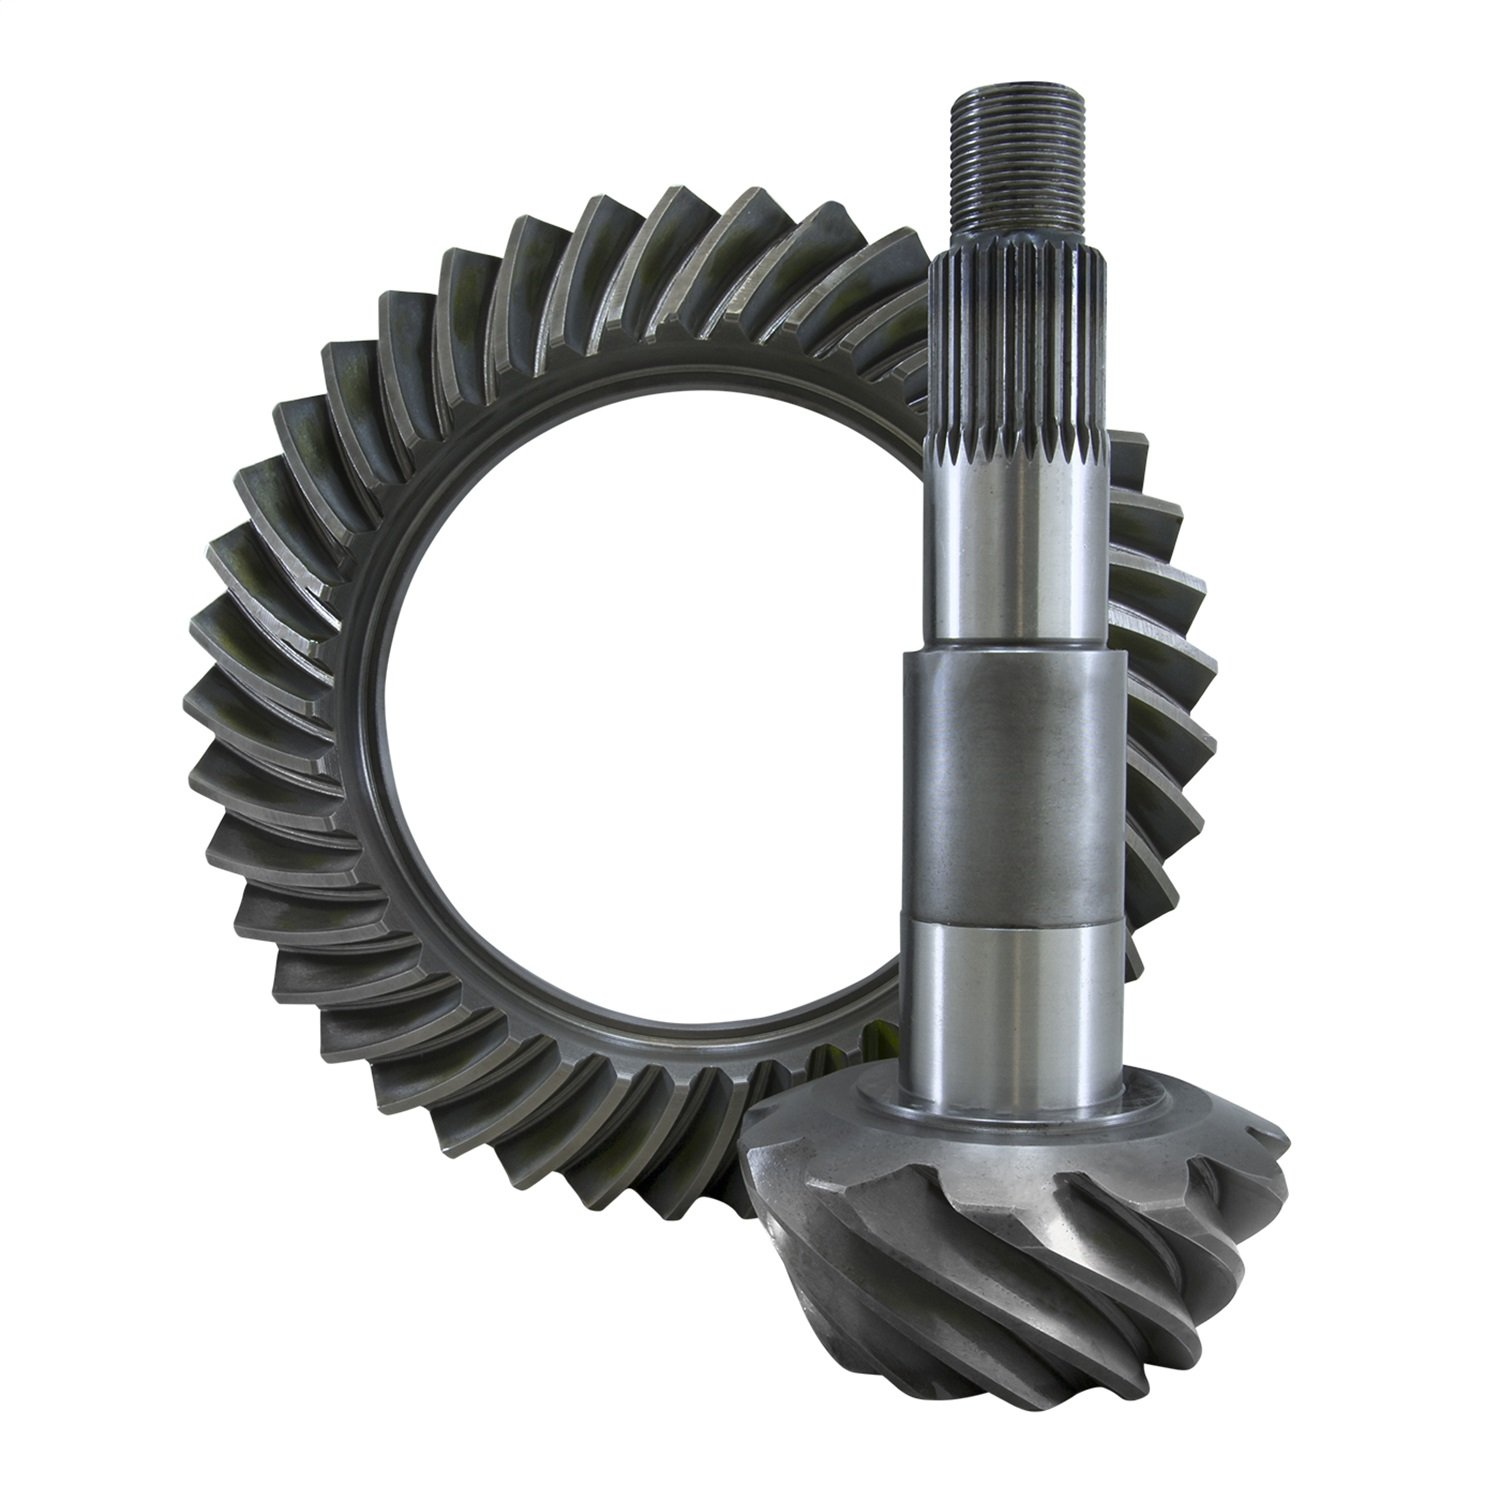 USA Standard Gear (ZG GM11.5-373) Ring & Pinion Gear Set for GM 11.5 Differential